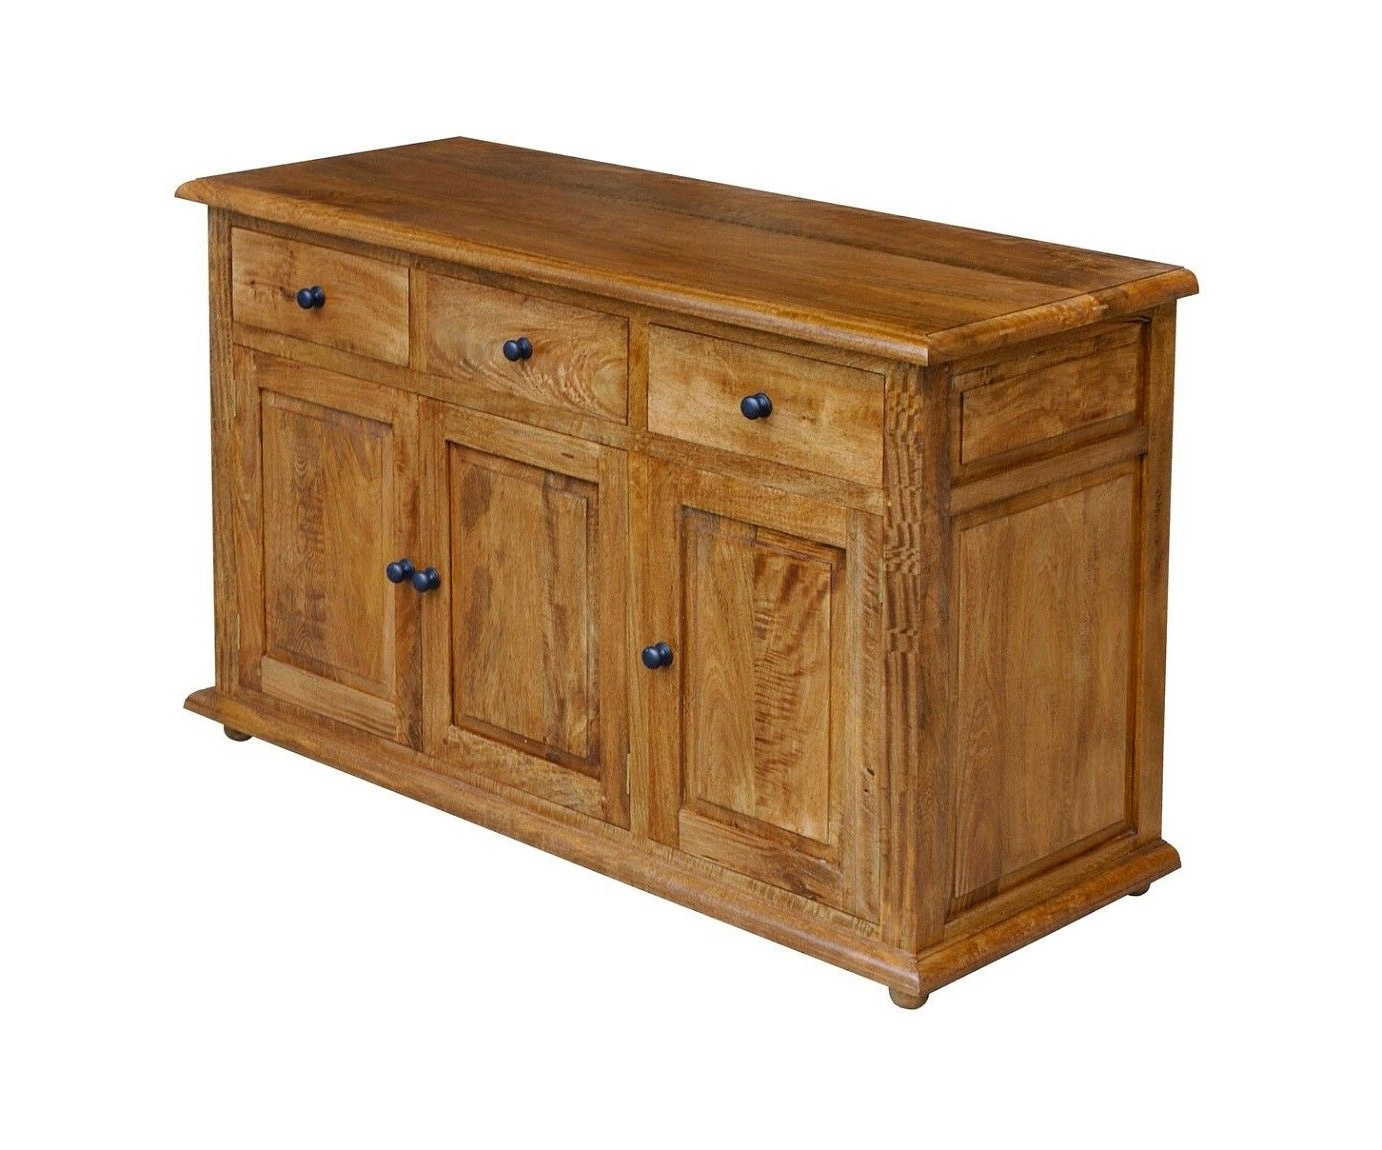 Current Natural Mango Wood Finish Sideboards In 3 Door Sideboard – Solid Mango Wood Sjs Provence Furniture Range (View 6 of 20)